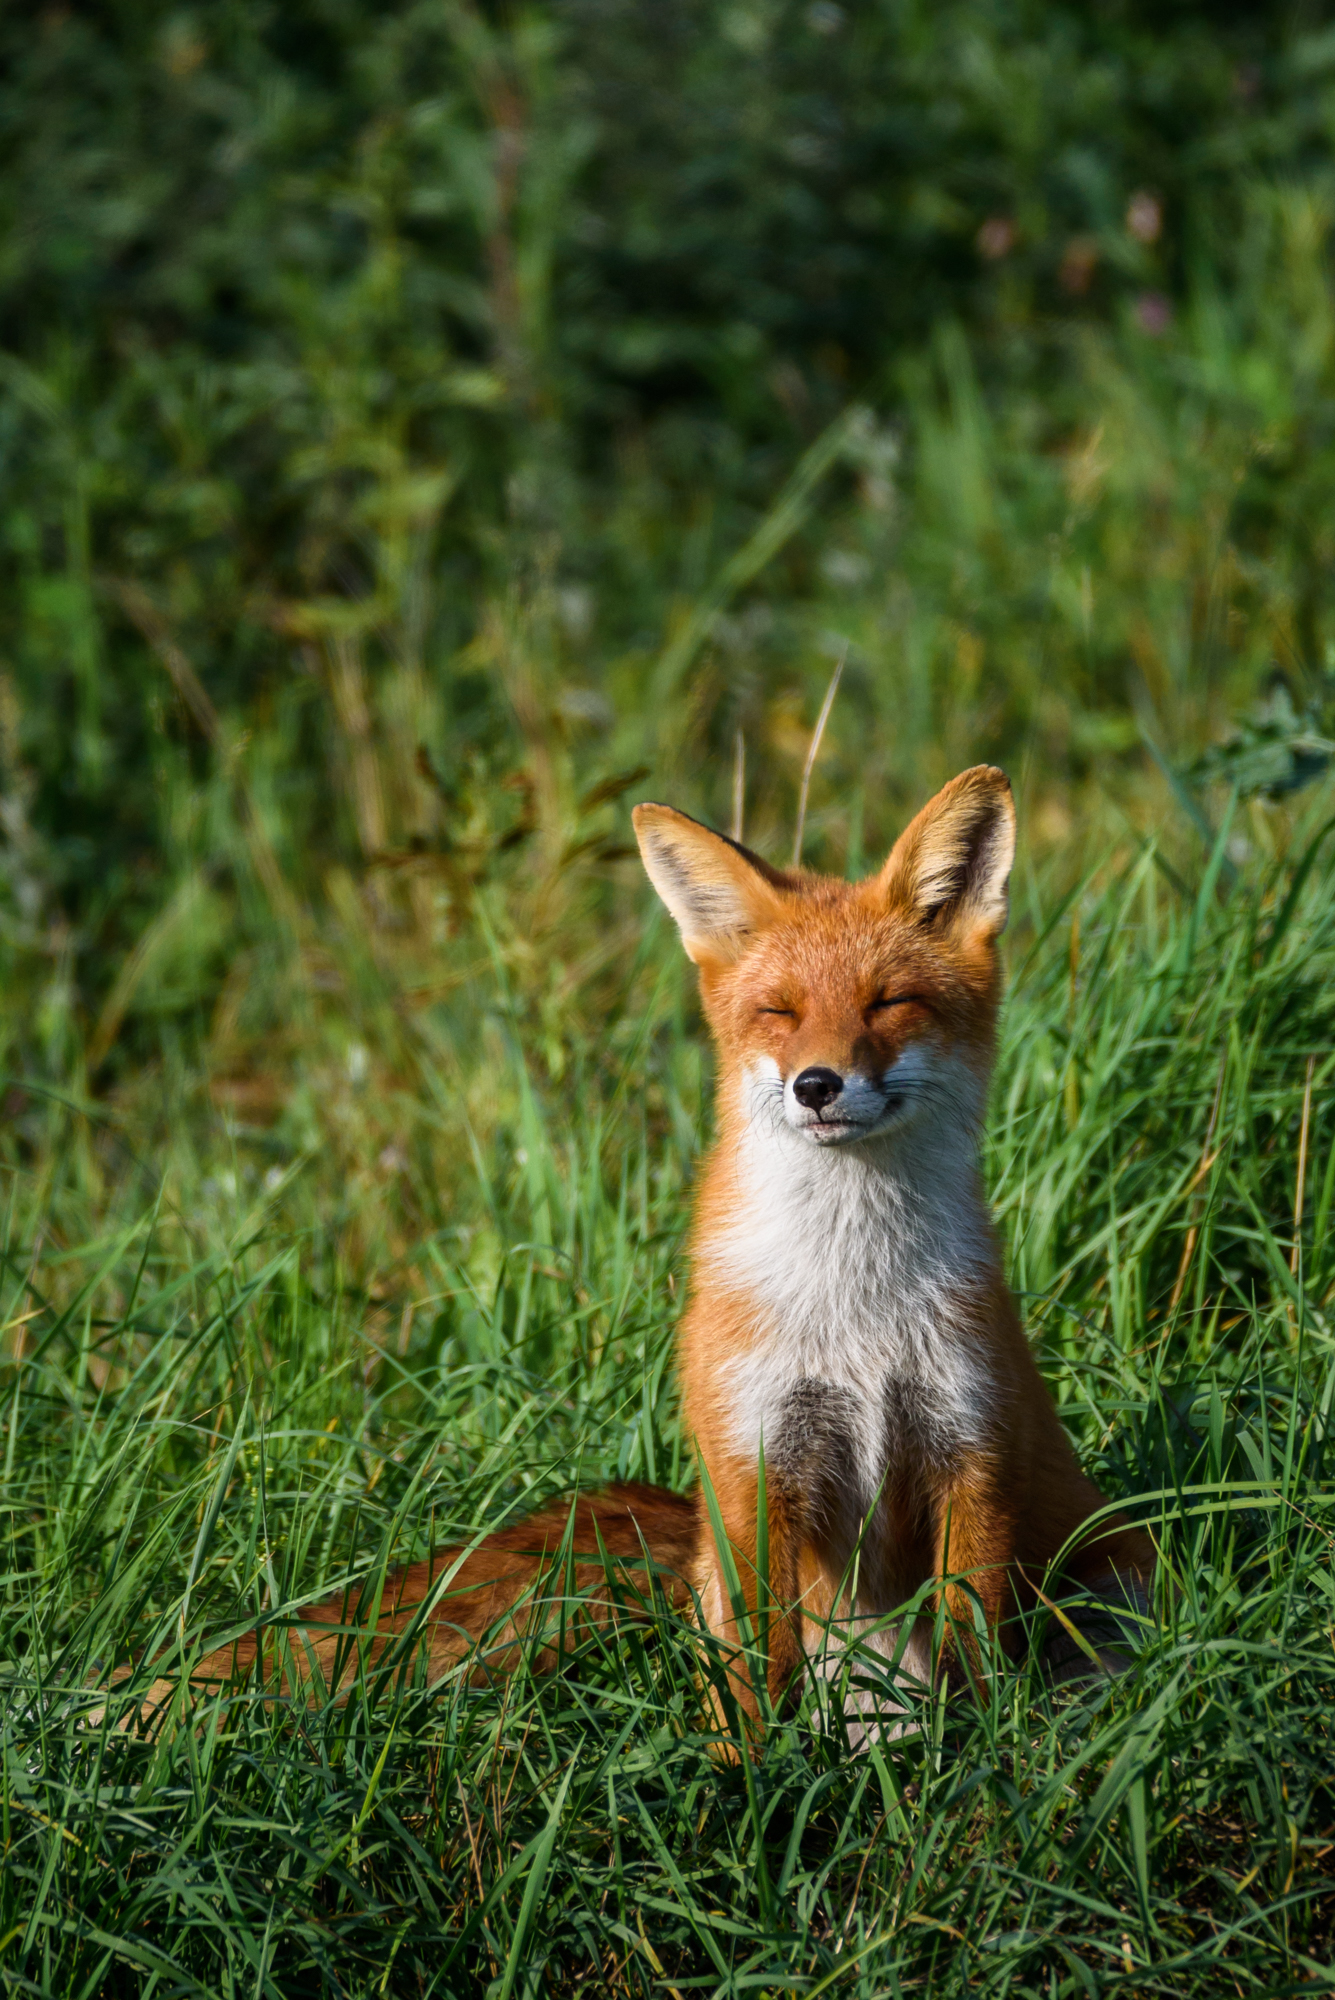 08.09.2018. Beautiful red fox (vulpes vulpes) sitting on grass at meadow.